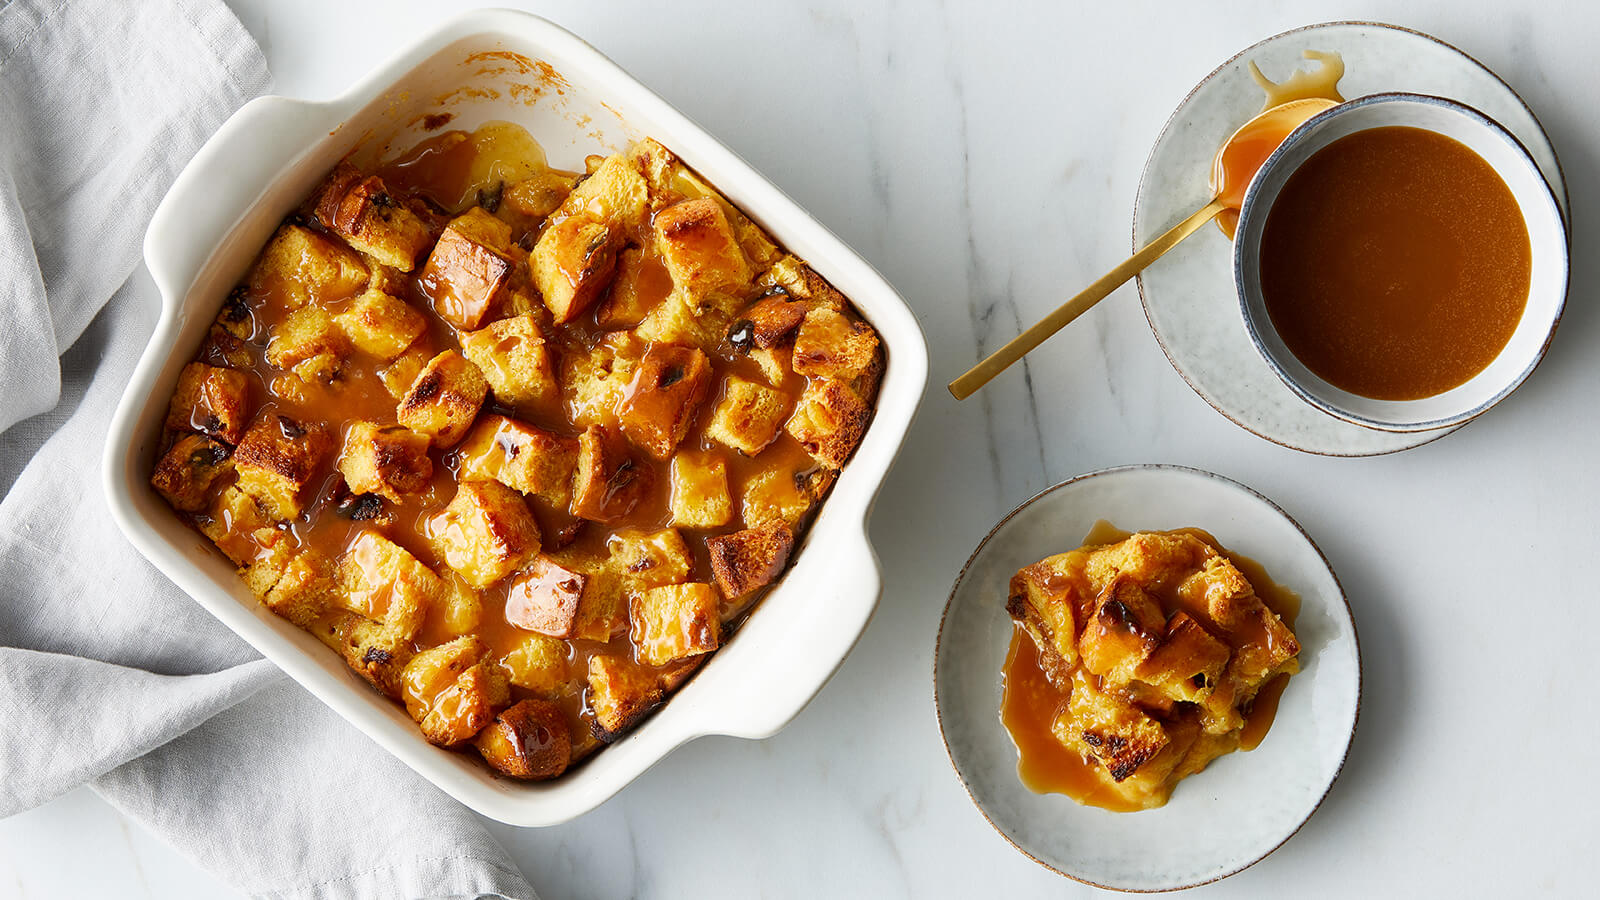 Eggnog and Panettone Bread Pudding with Amaretto Caramel Sauce